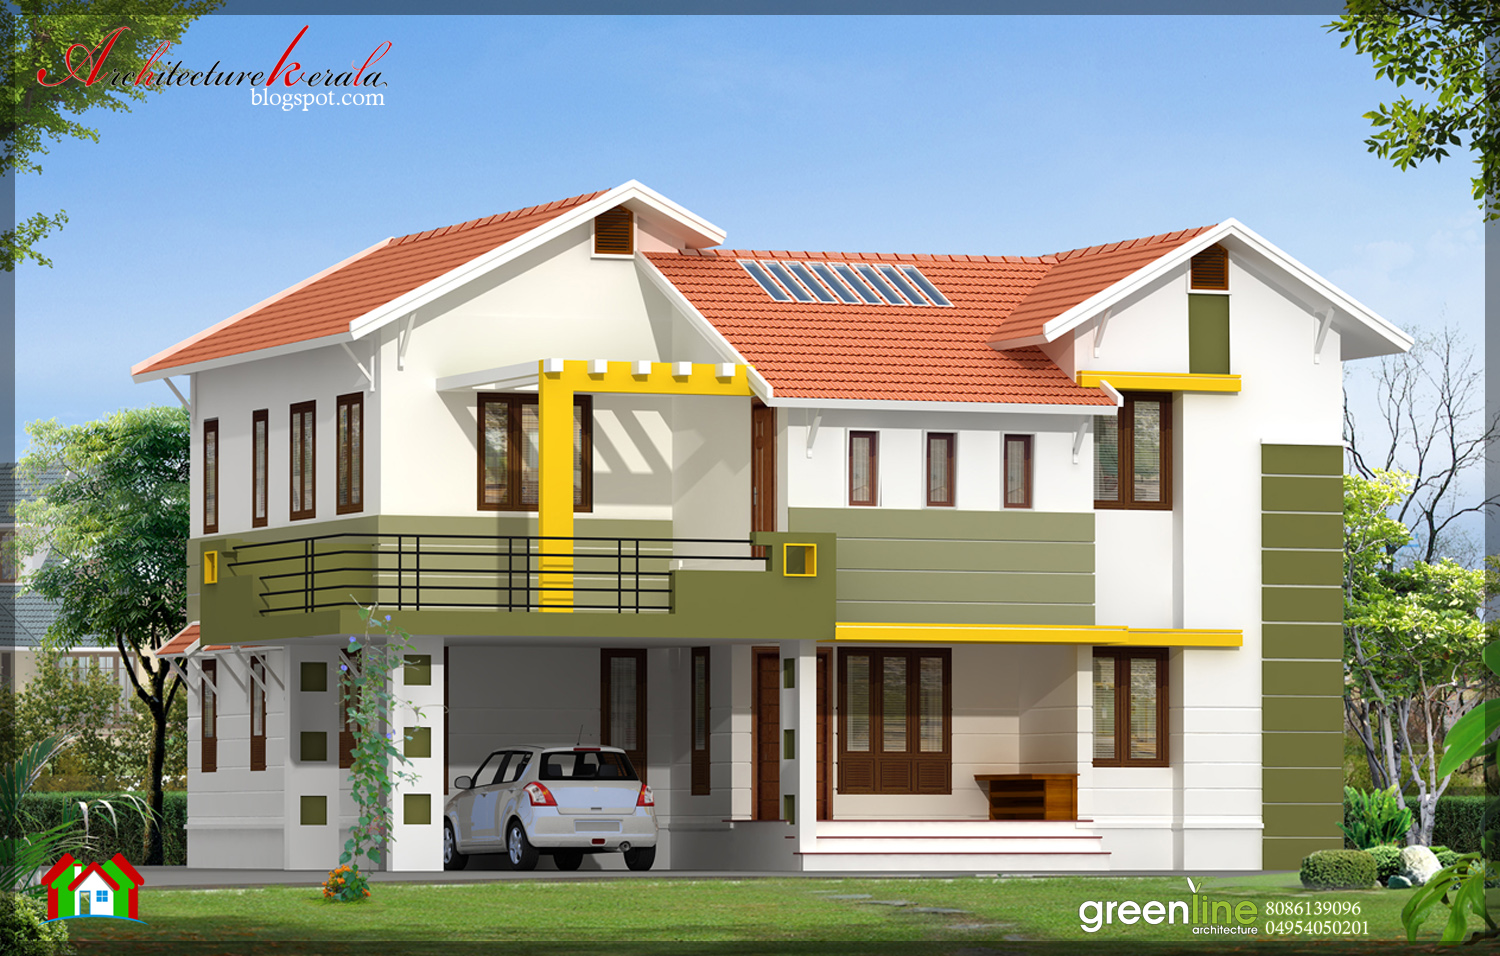 4 Bhk Contemporary Style Indian Home Elevation Design In 2430 Sq Ft Architecture Kerala